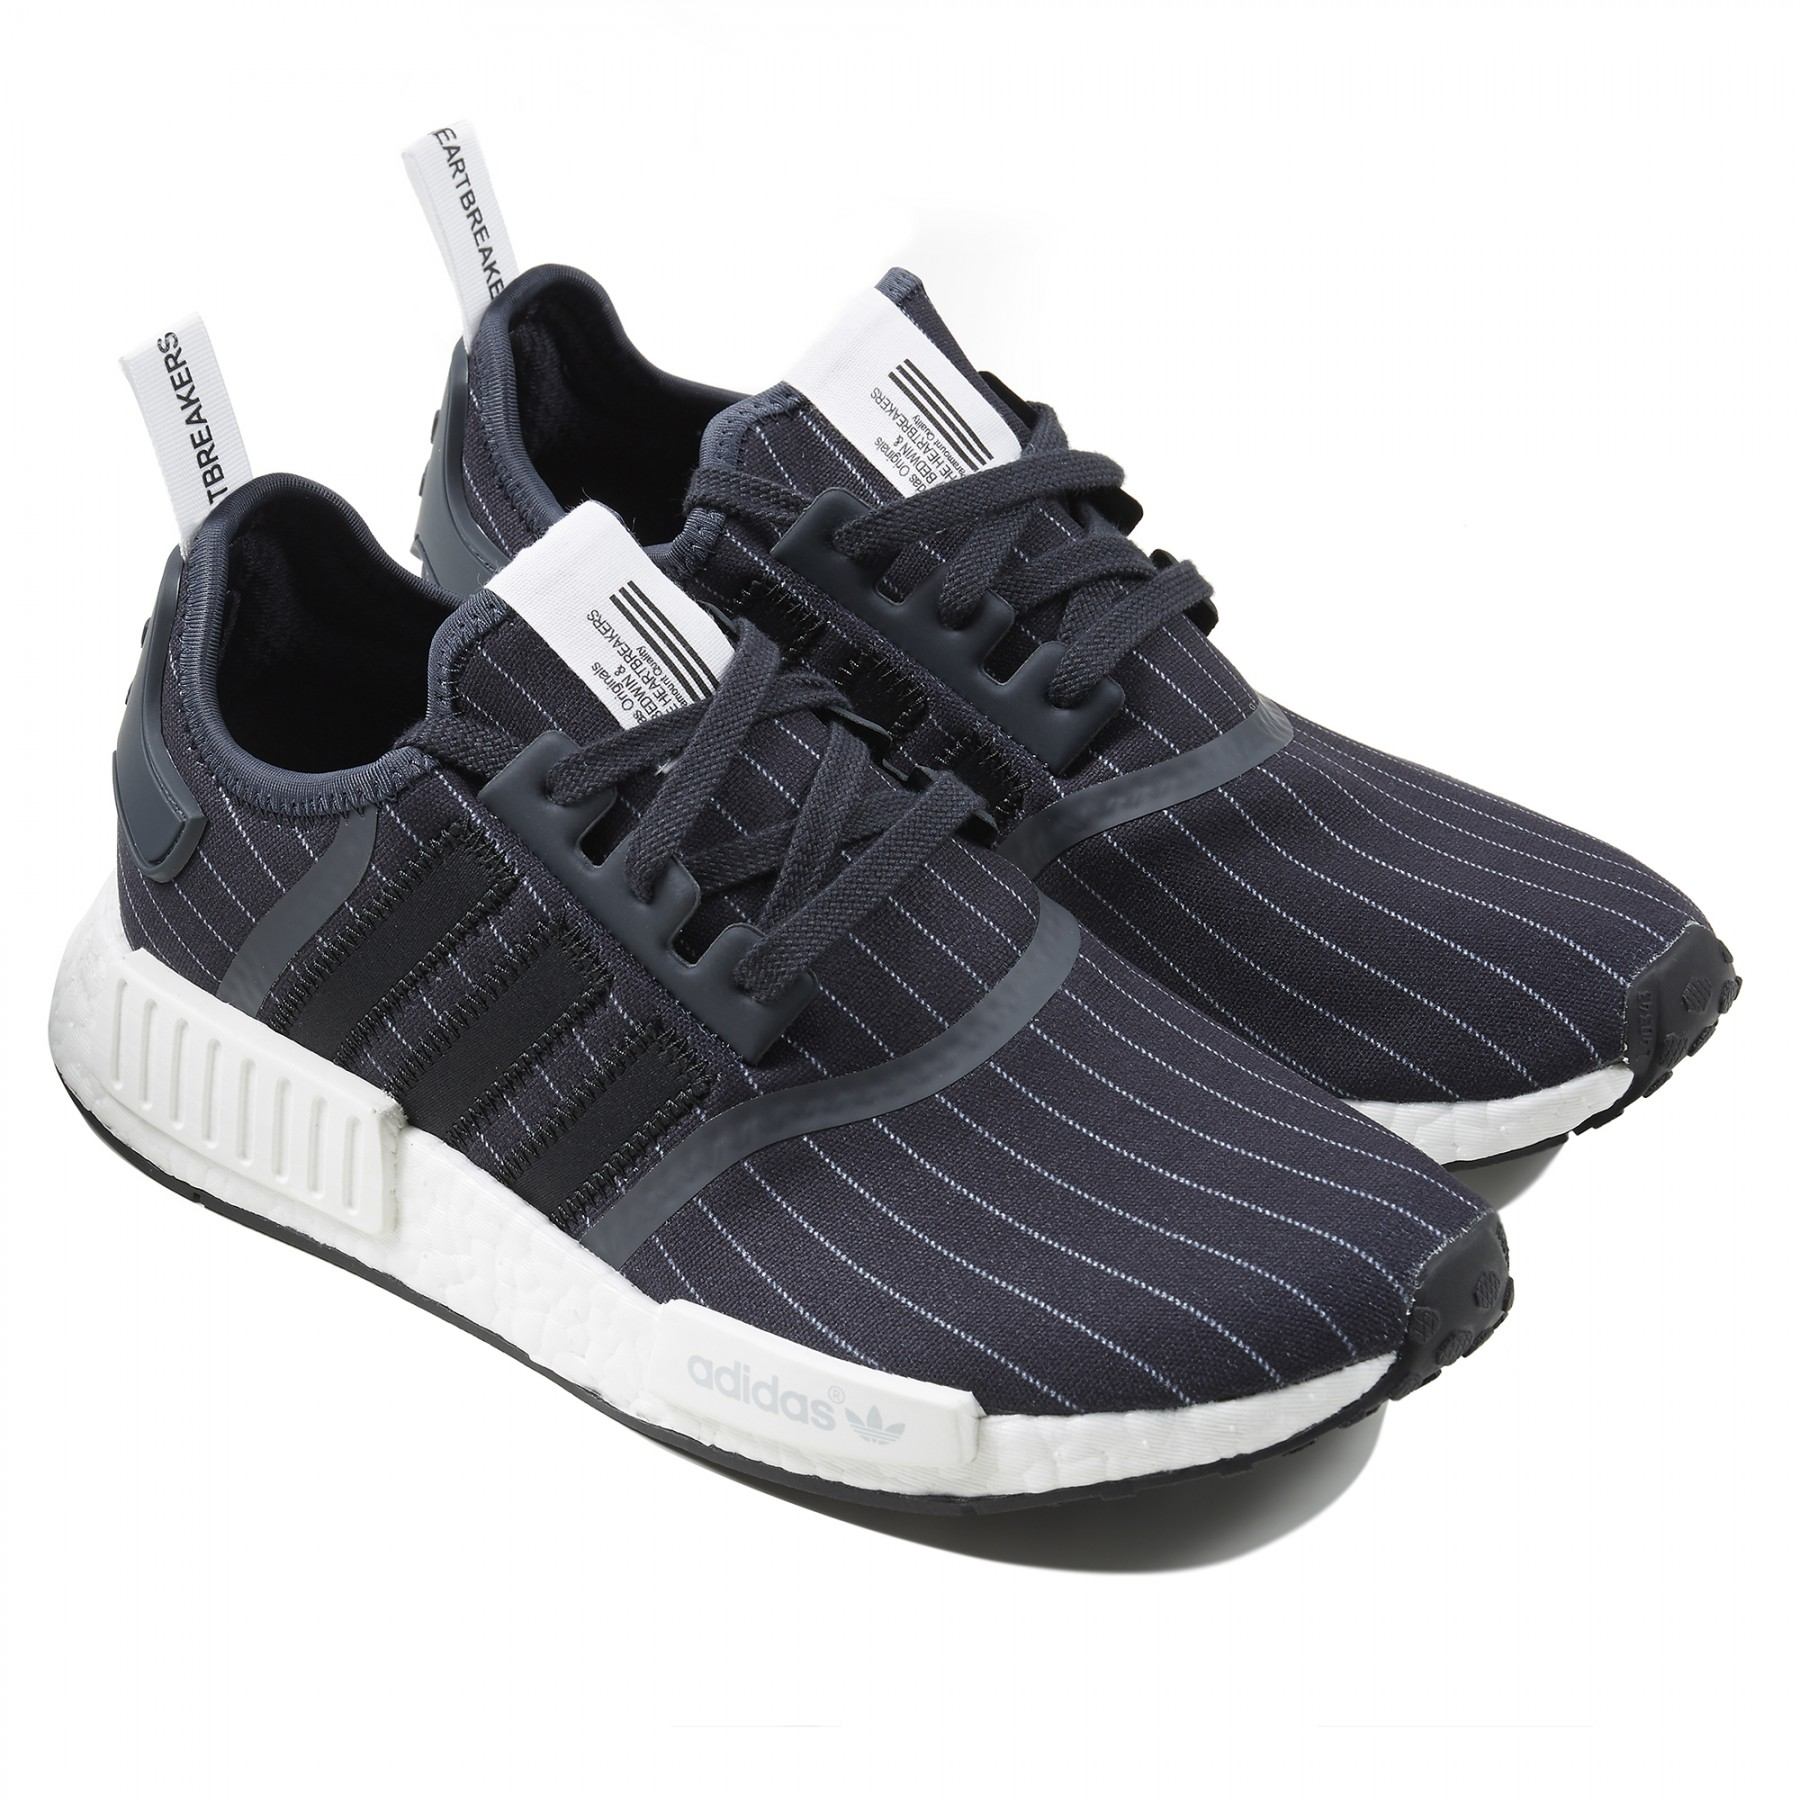 quality design 19a50 52474 Adidas Adidas NMD R1 Bedwin Size 8 - Low-Top Sneakers for Sa